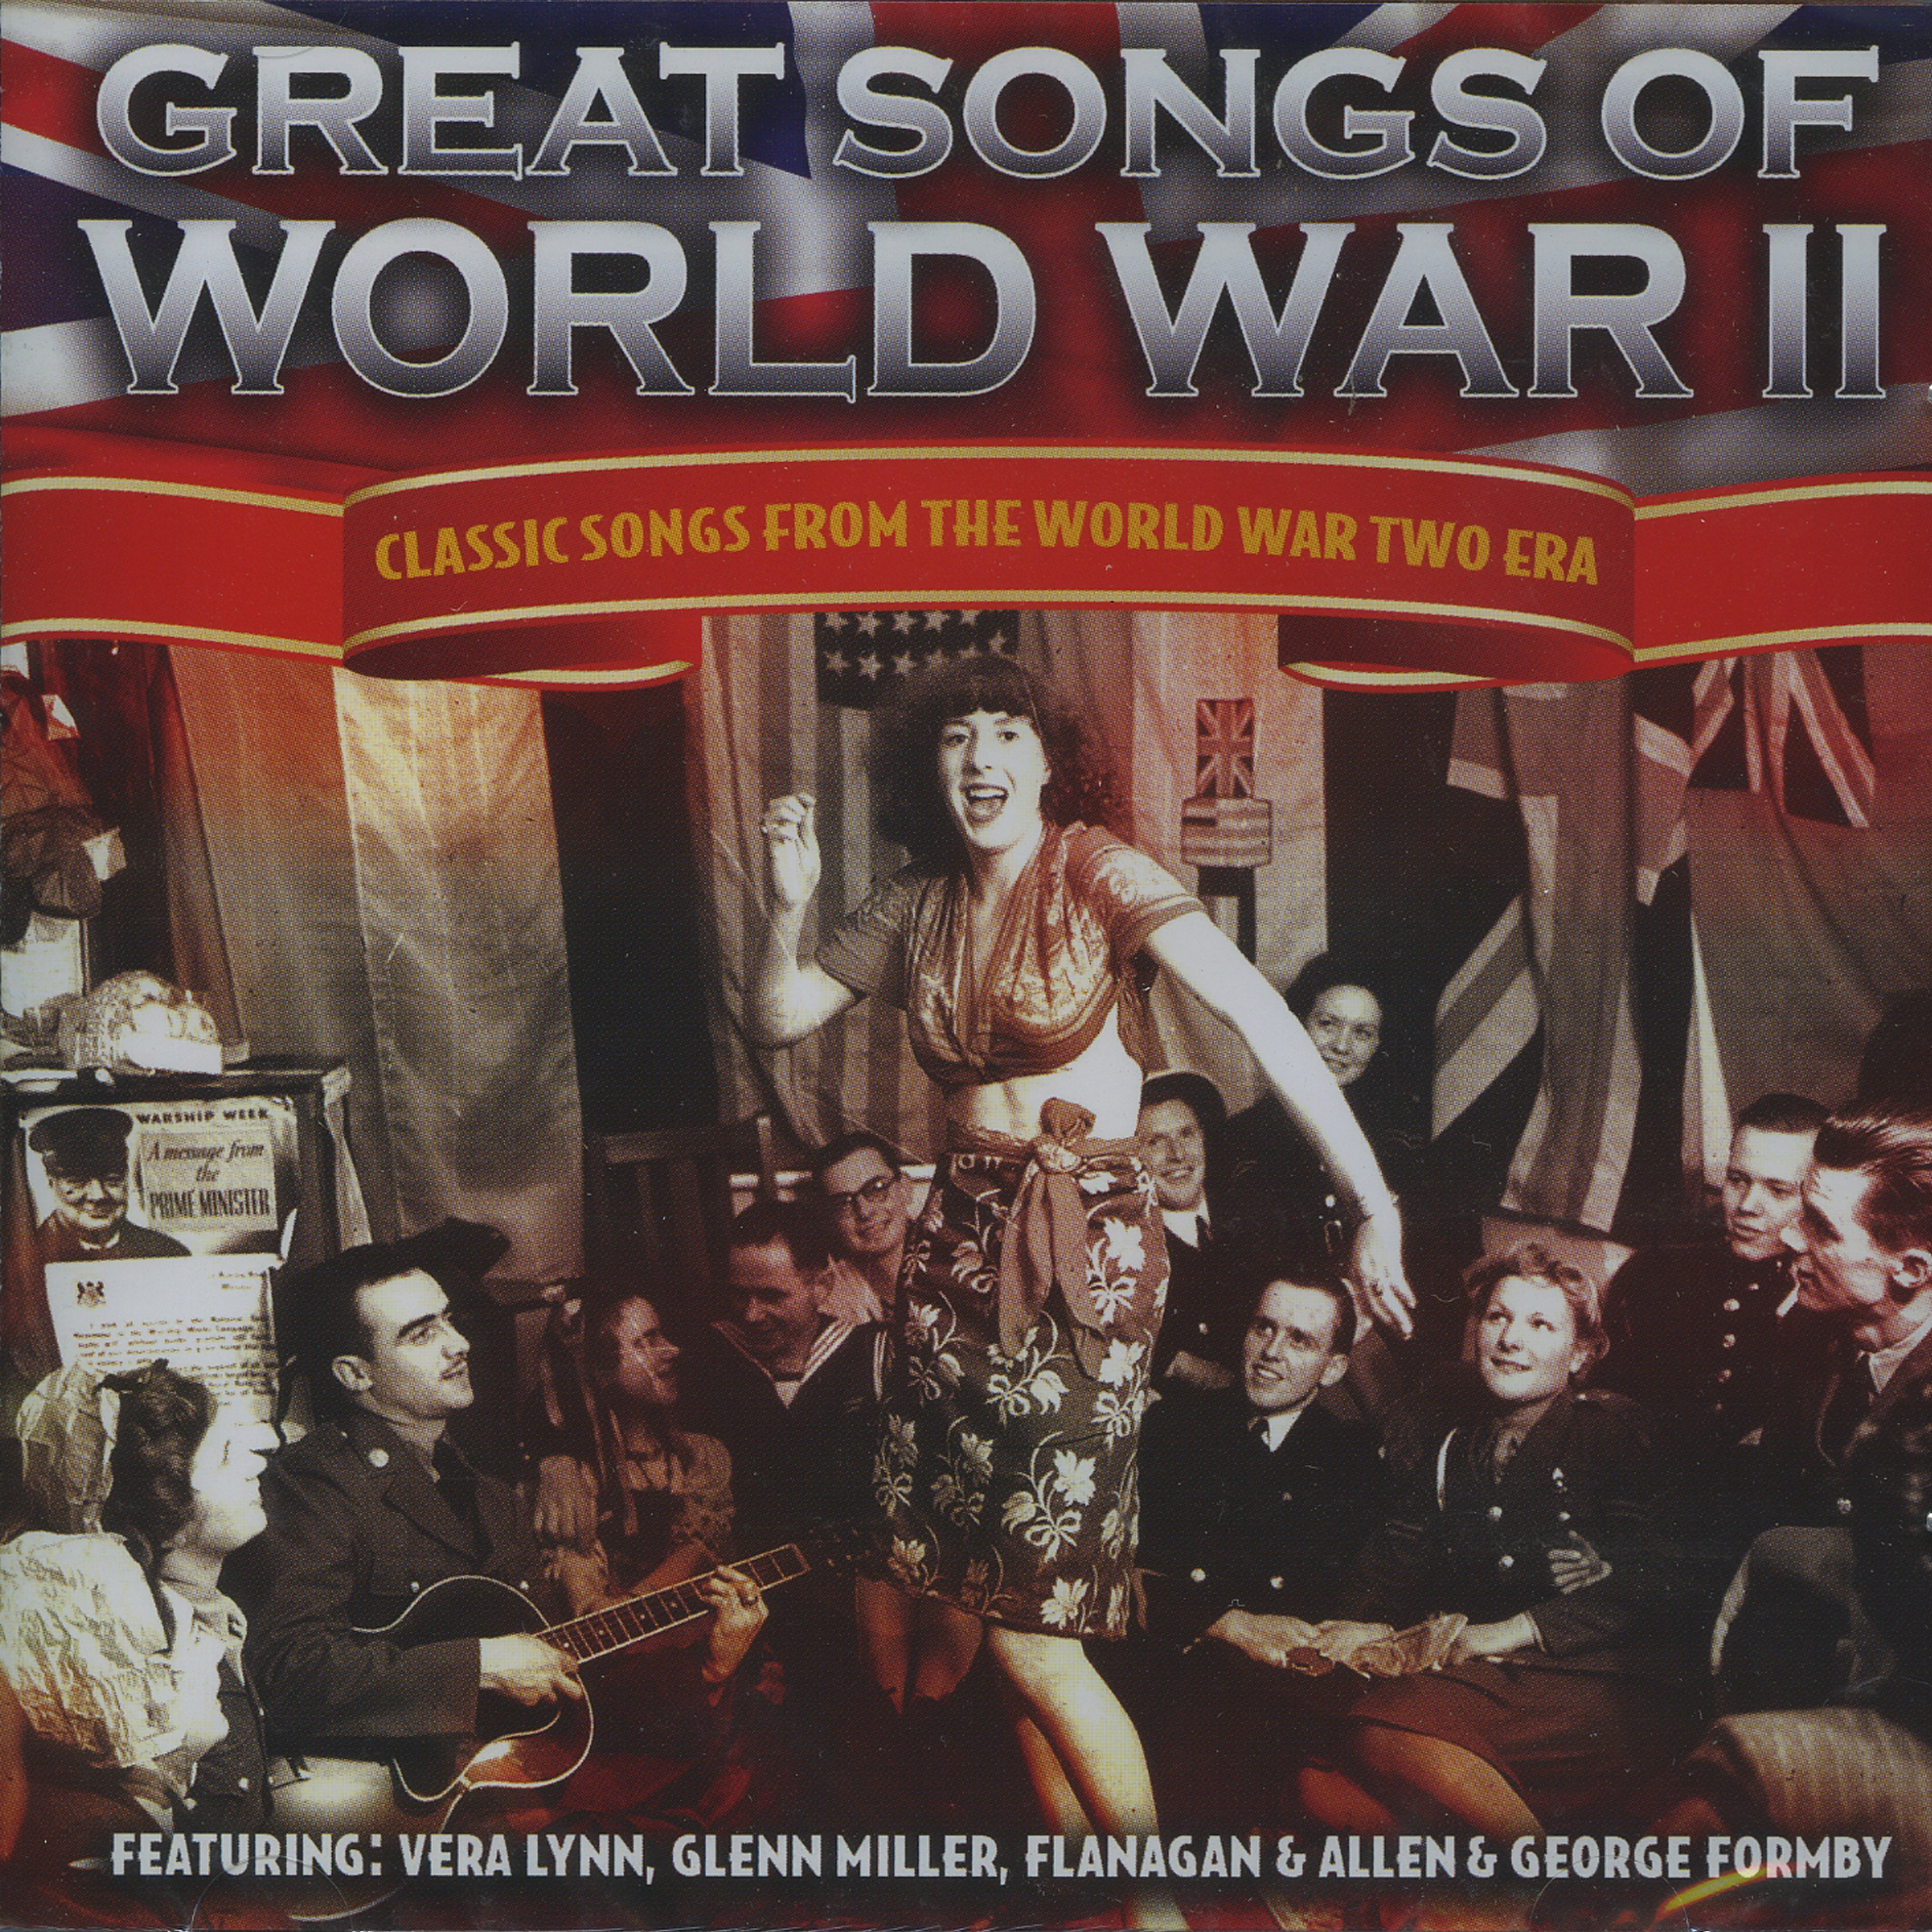 Some beautiful songs of World War II  - Do you remember them?